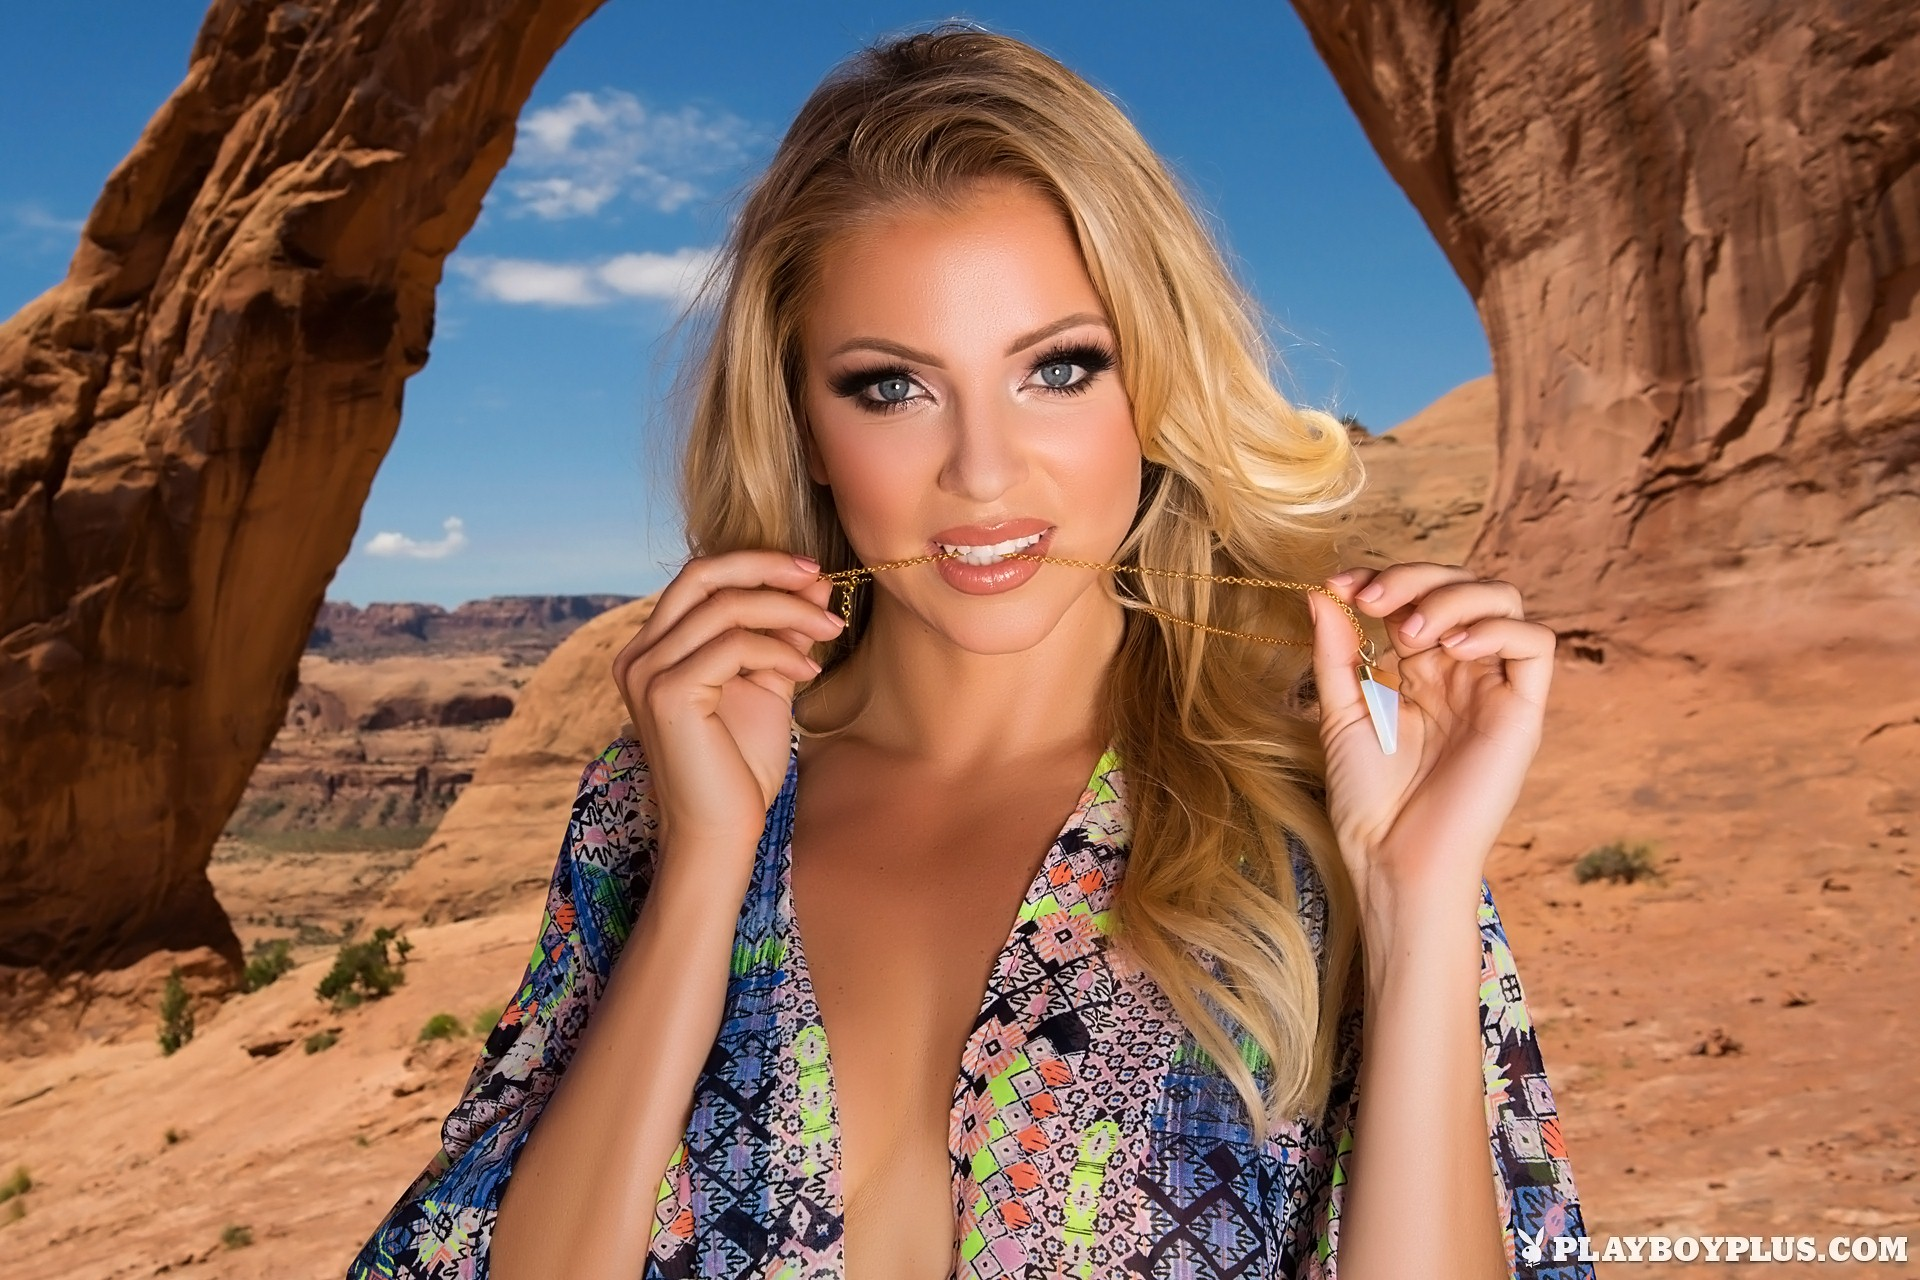 Blanca Brooke nude in Desert Rose for Playboy | Daily Girls @ Female Update